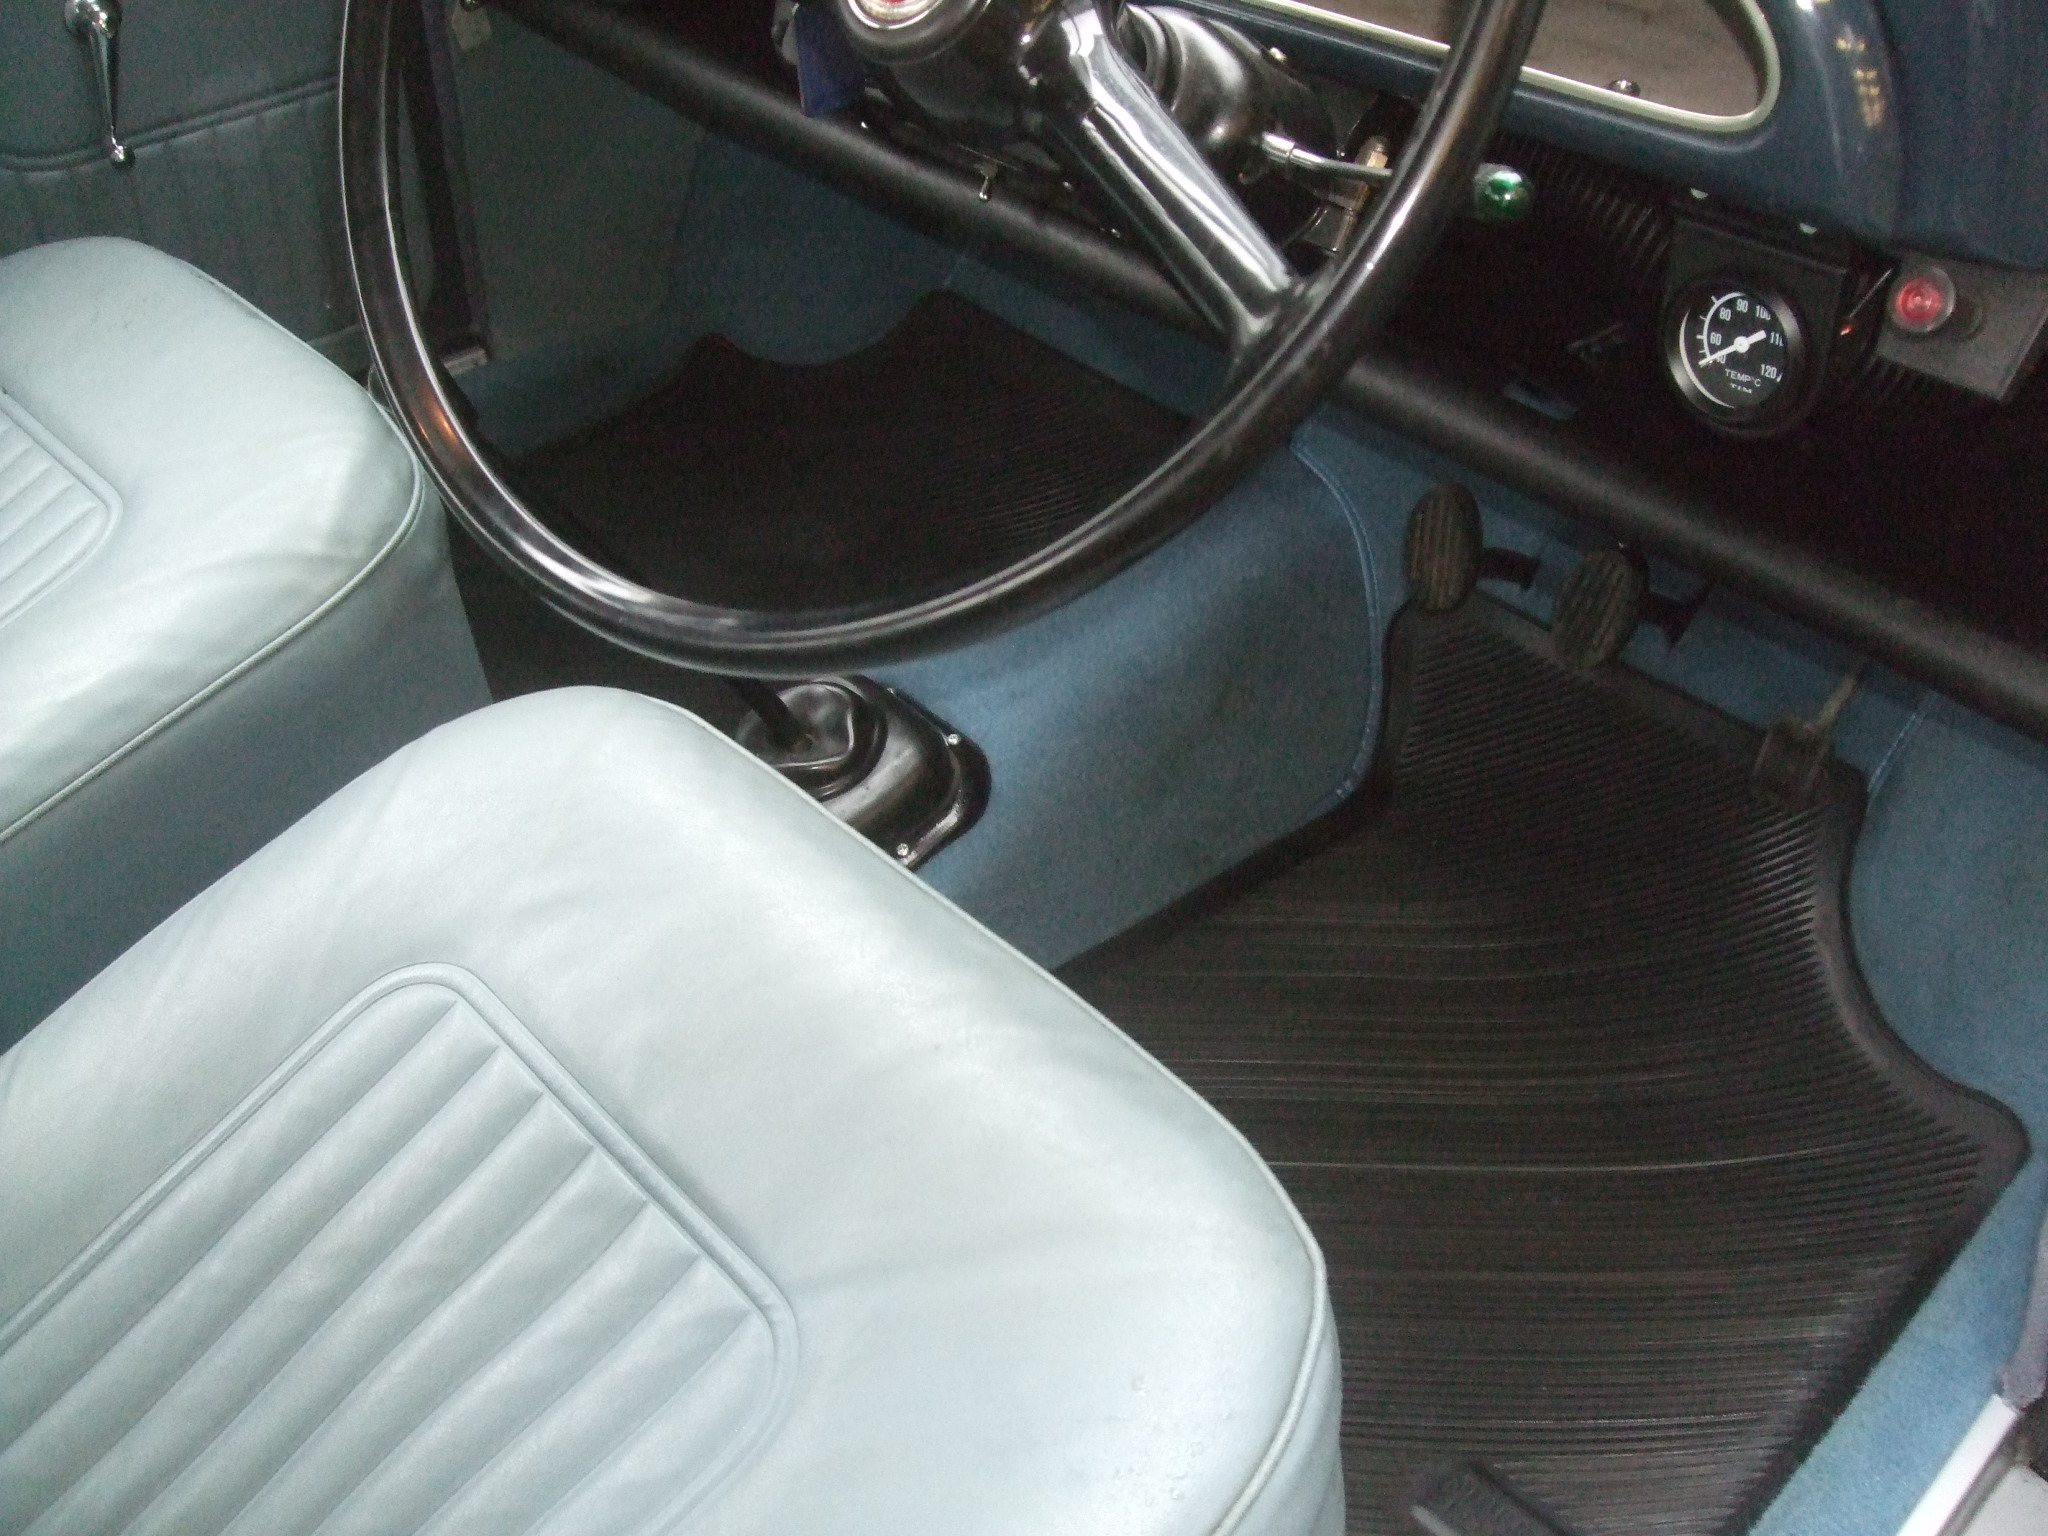 1971 trafalgar blue 2 door saloon light blue interior trim charles ware 39 s morris minor centre. Black Bedroom Furniture Sets. Home Design Ideas